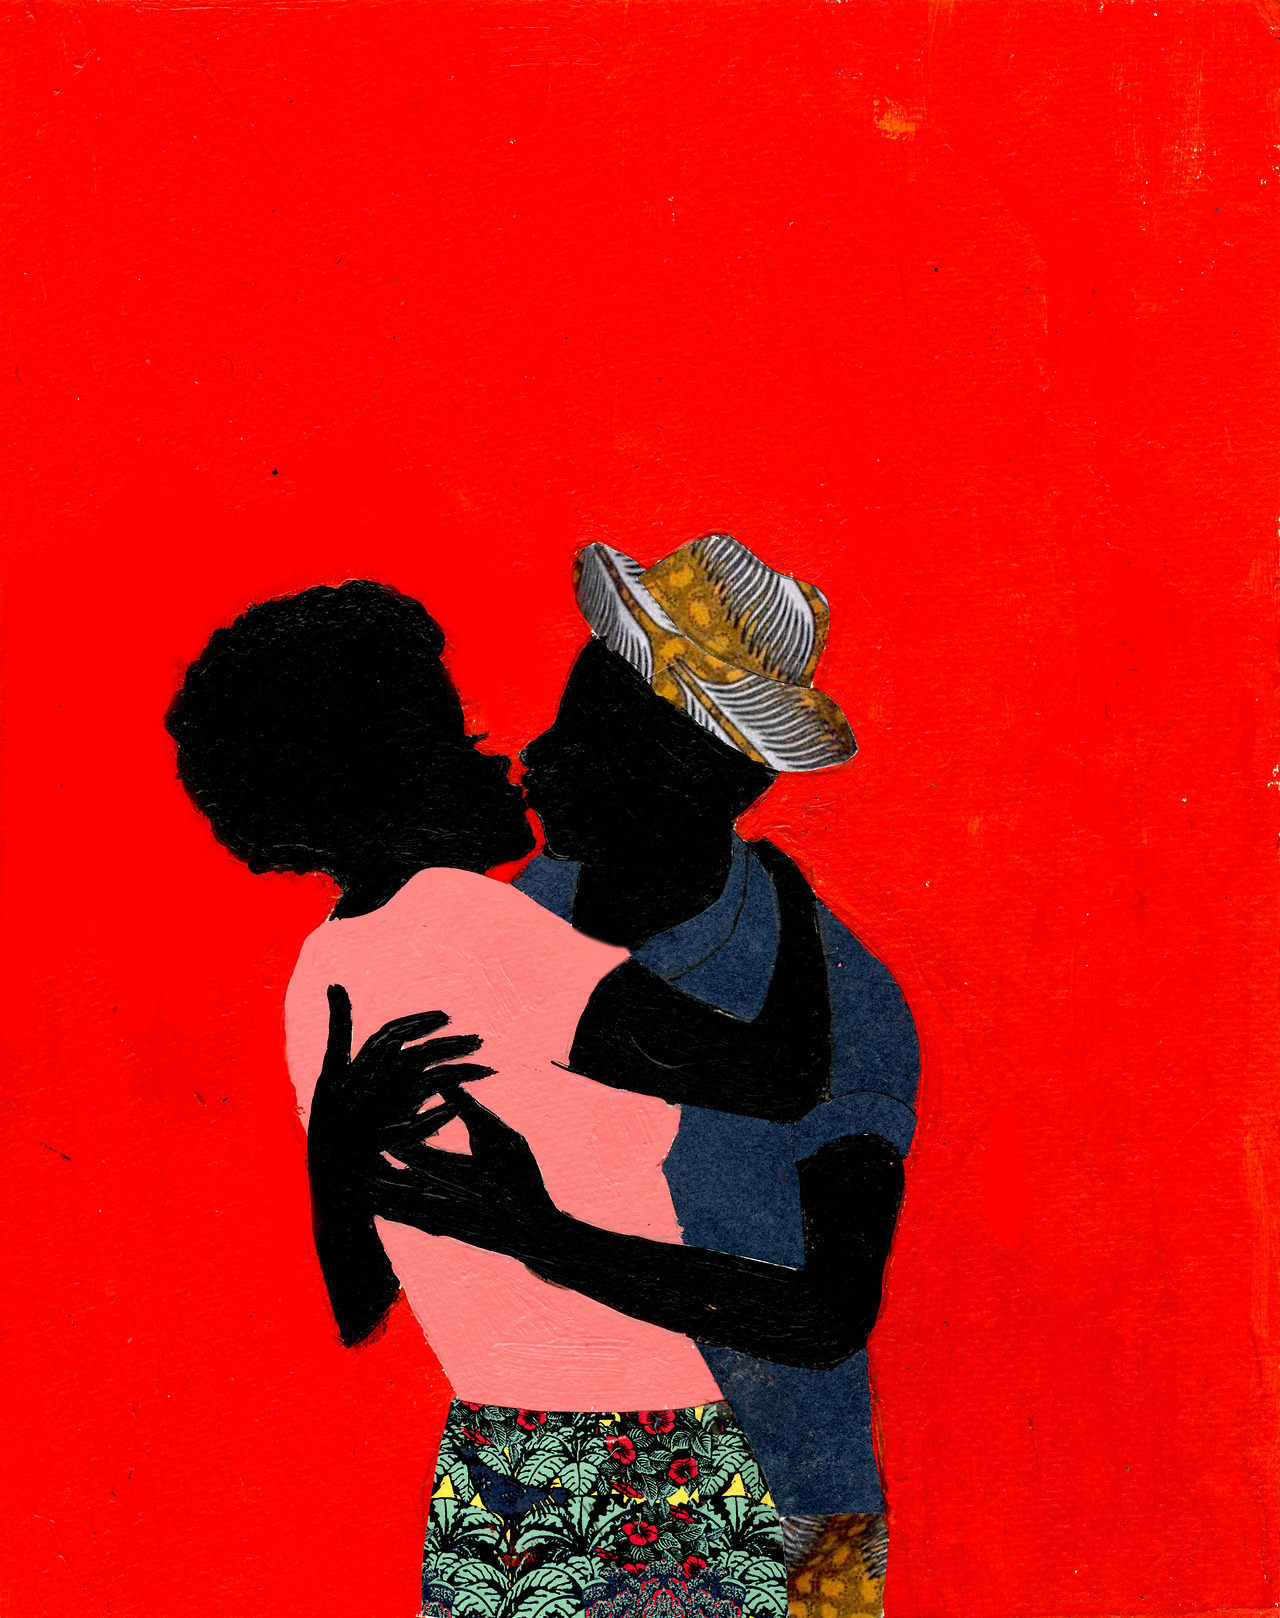 ethiopienne :      stayingunderground :     Original illustration created by   Jamilla Okubo   for the cover of   Love Life Music  , a mix by   Mistah Rapsey  .         follow her tumblr @  vivaillajams        jamilla this is SO unbelievably beautiful